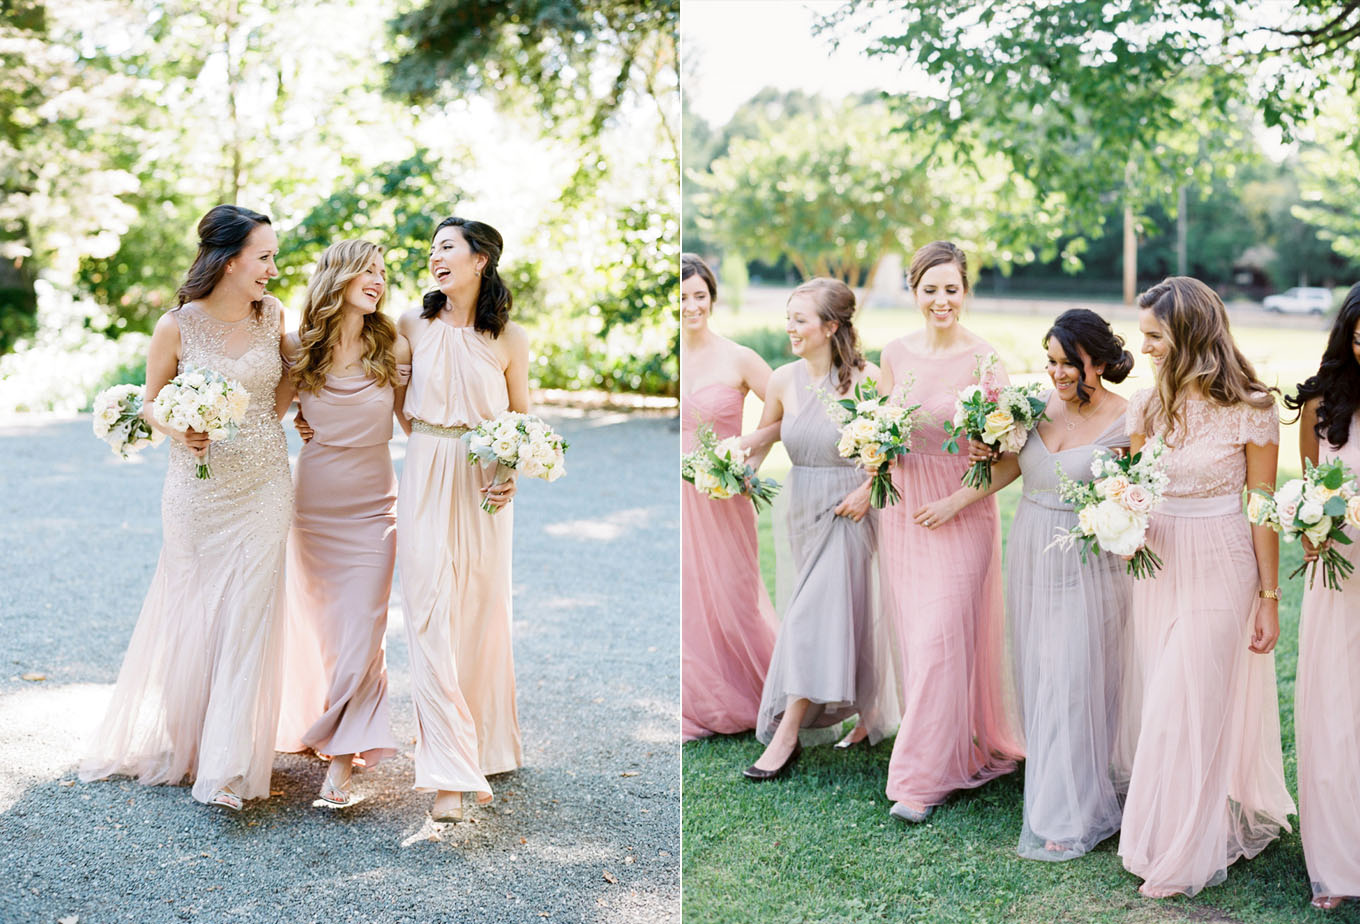 Mismatched Short Nude Bridesmaid Dresses In Sedona